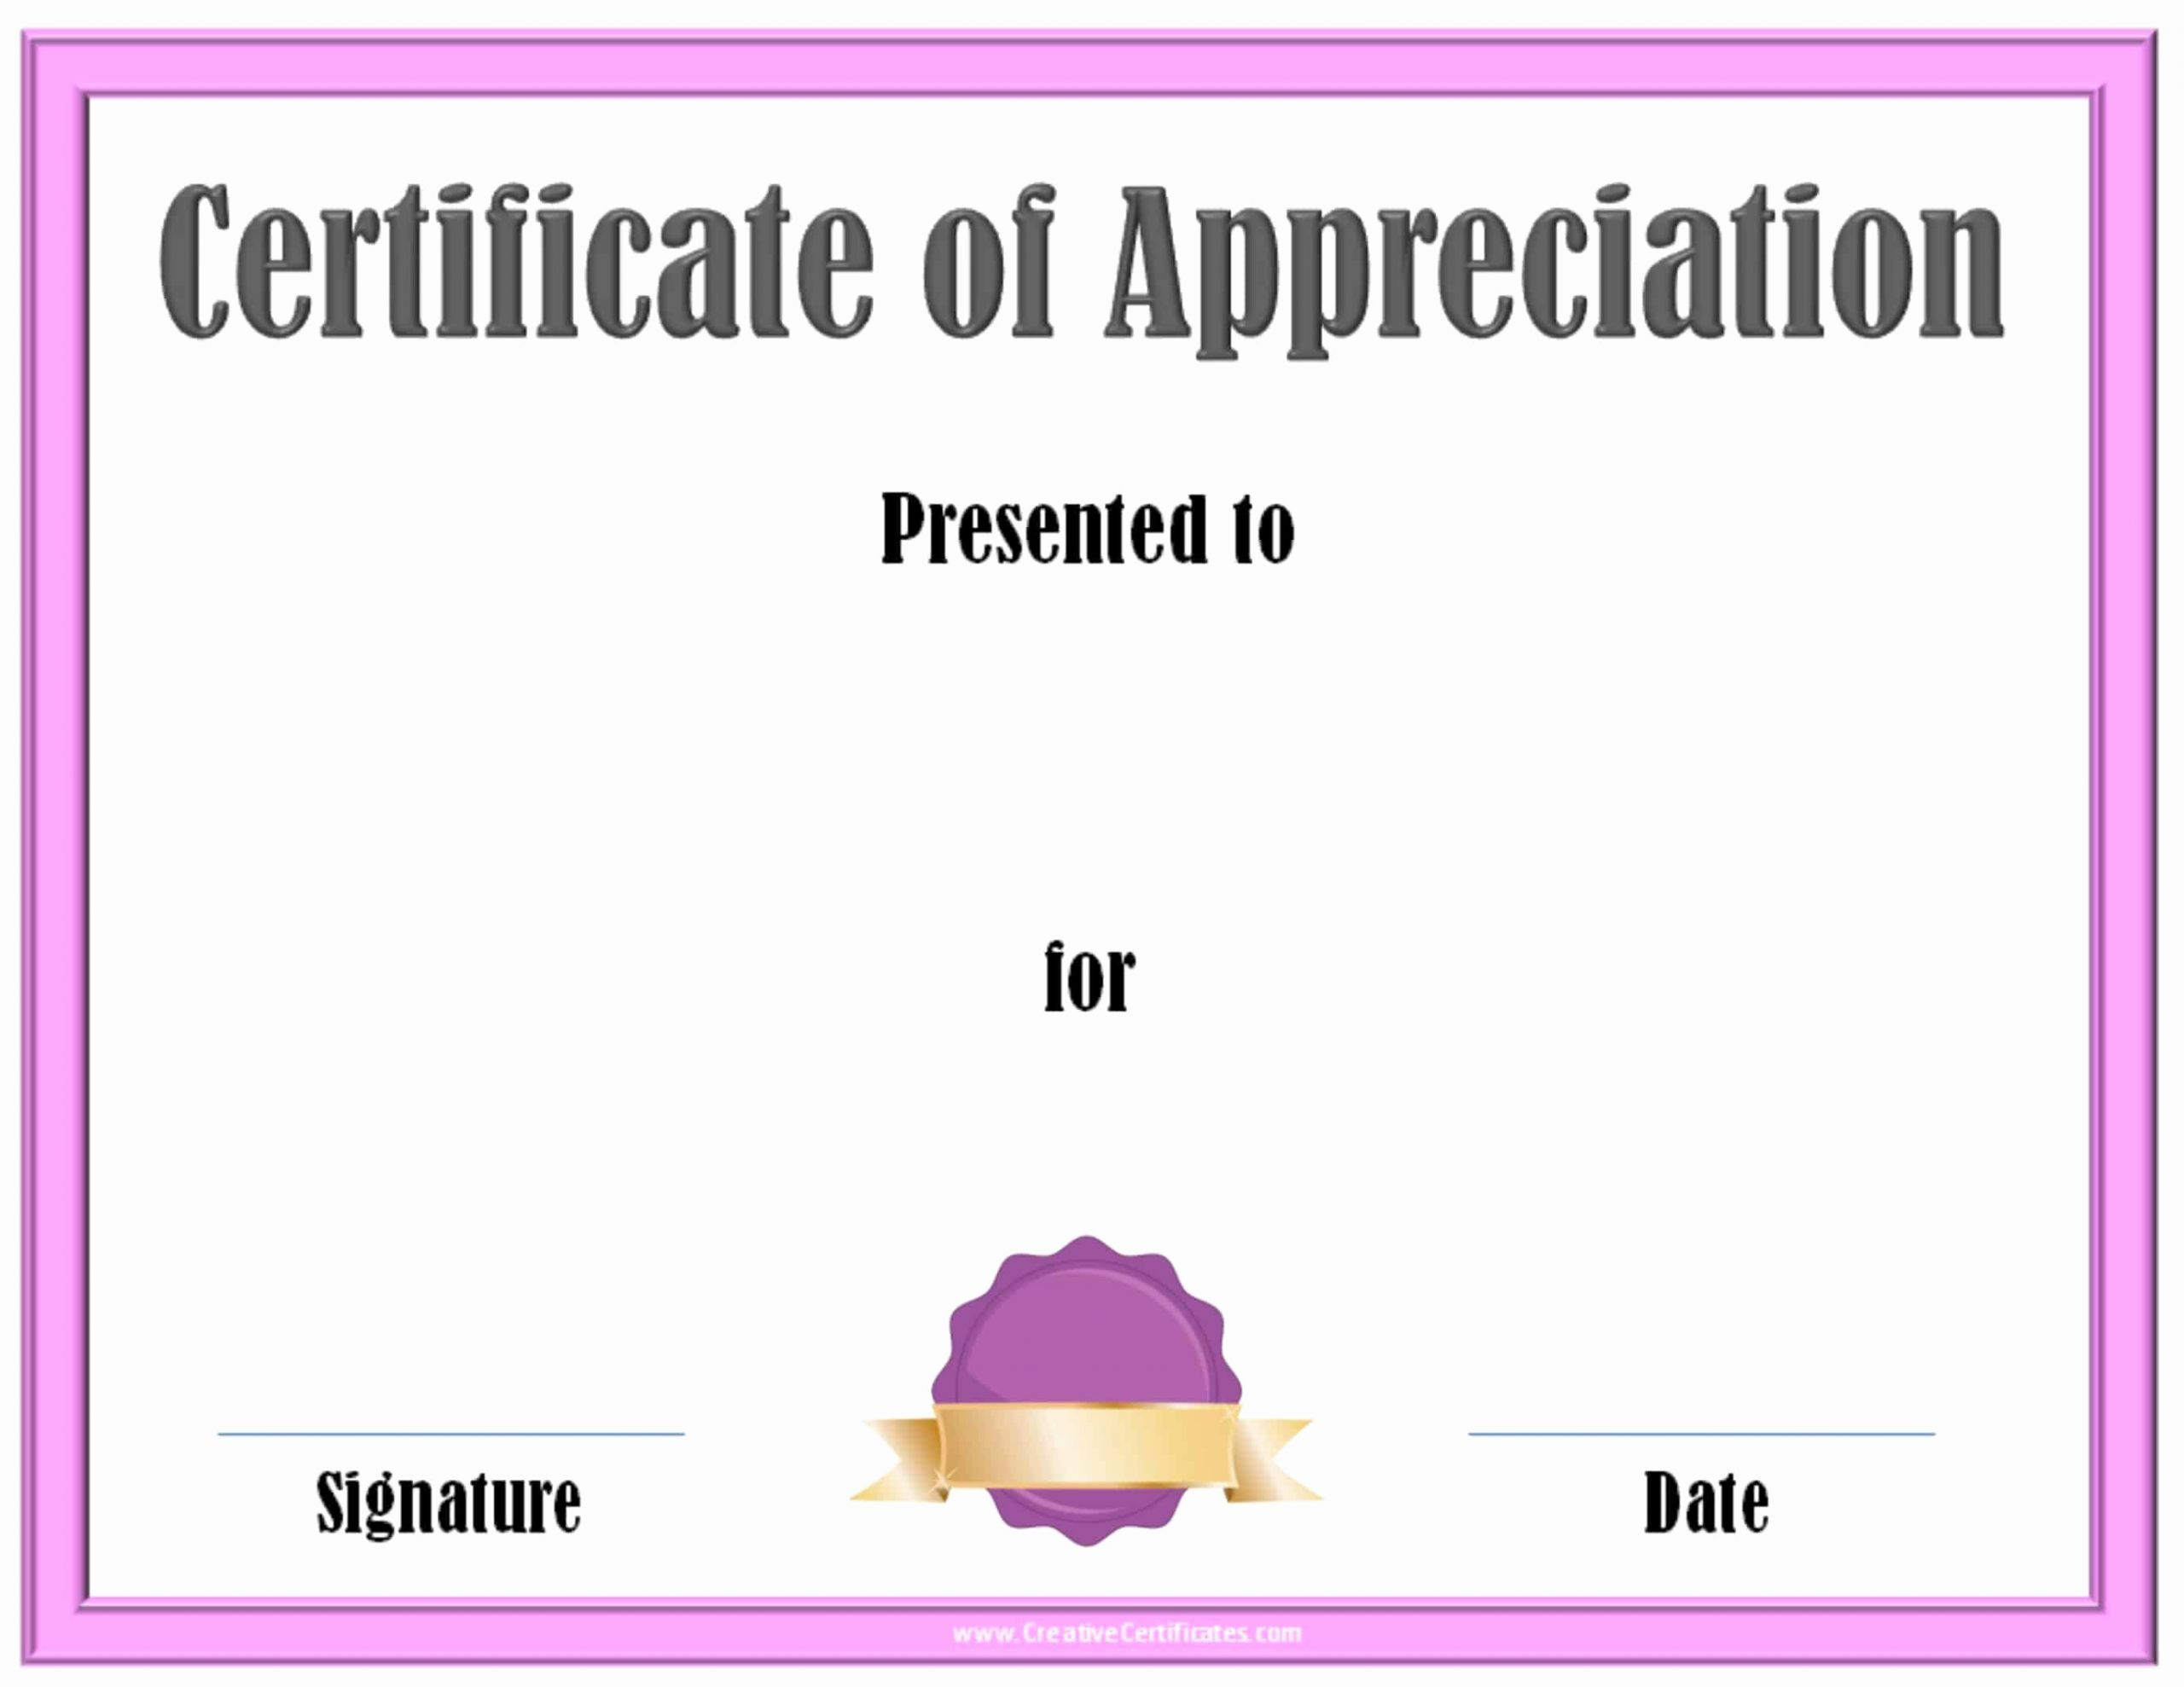 Appreciation Certificate Template Free Best Of Free Certificate Of Appreciation Template